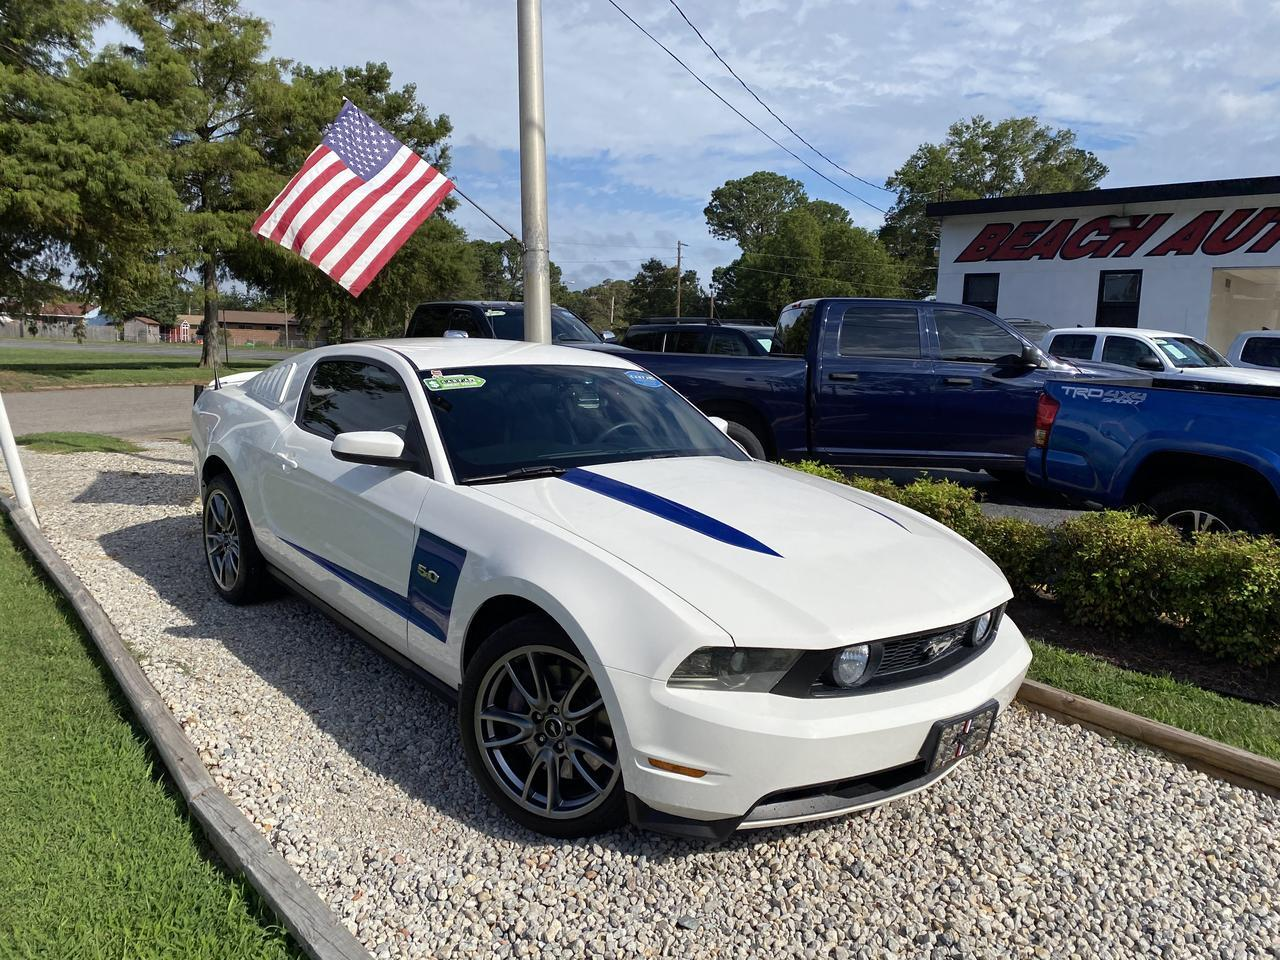 2011 FORD MUSTANG GT, WARRANTY, LEATHER, MANUAL, A/C, CRUISE CONTROL, SHAKER SOUND, AUX/USB PORT, CLEAN CARFAX! Norfolk VA